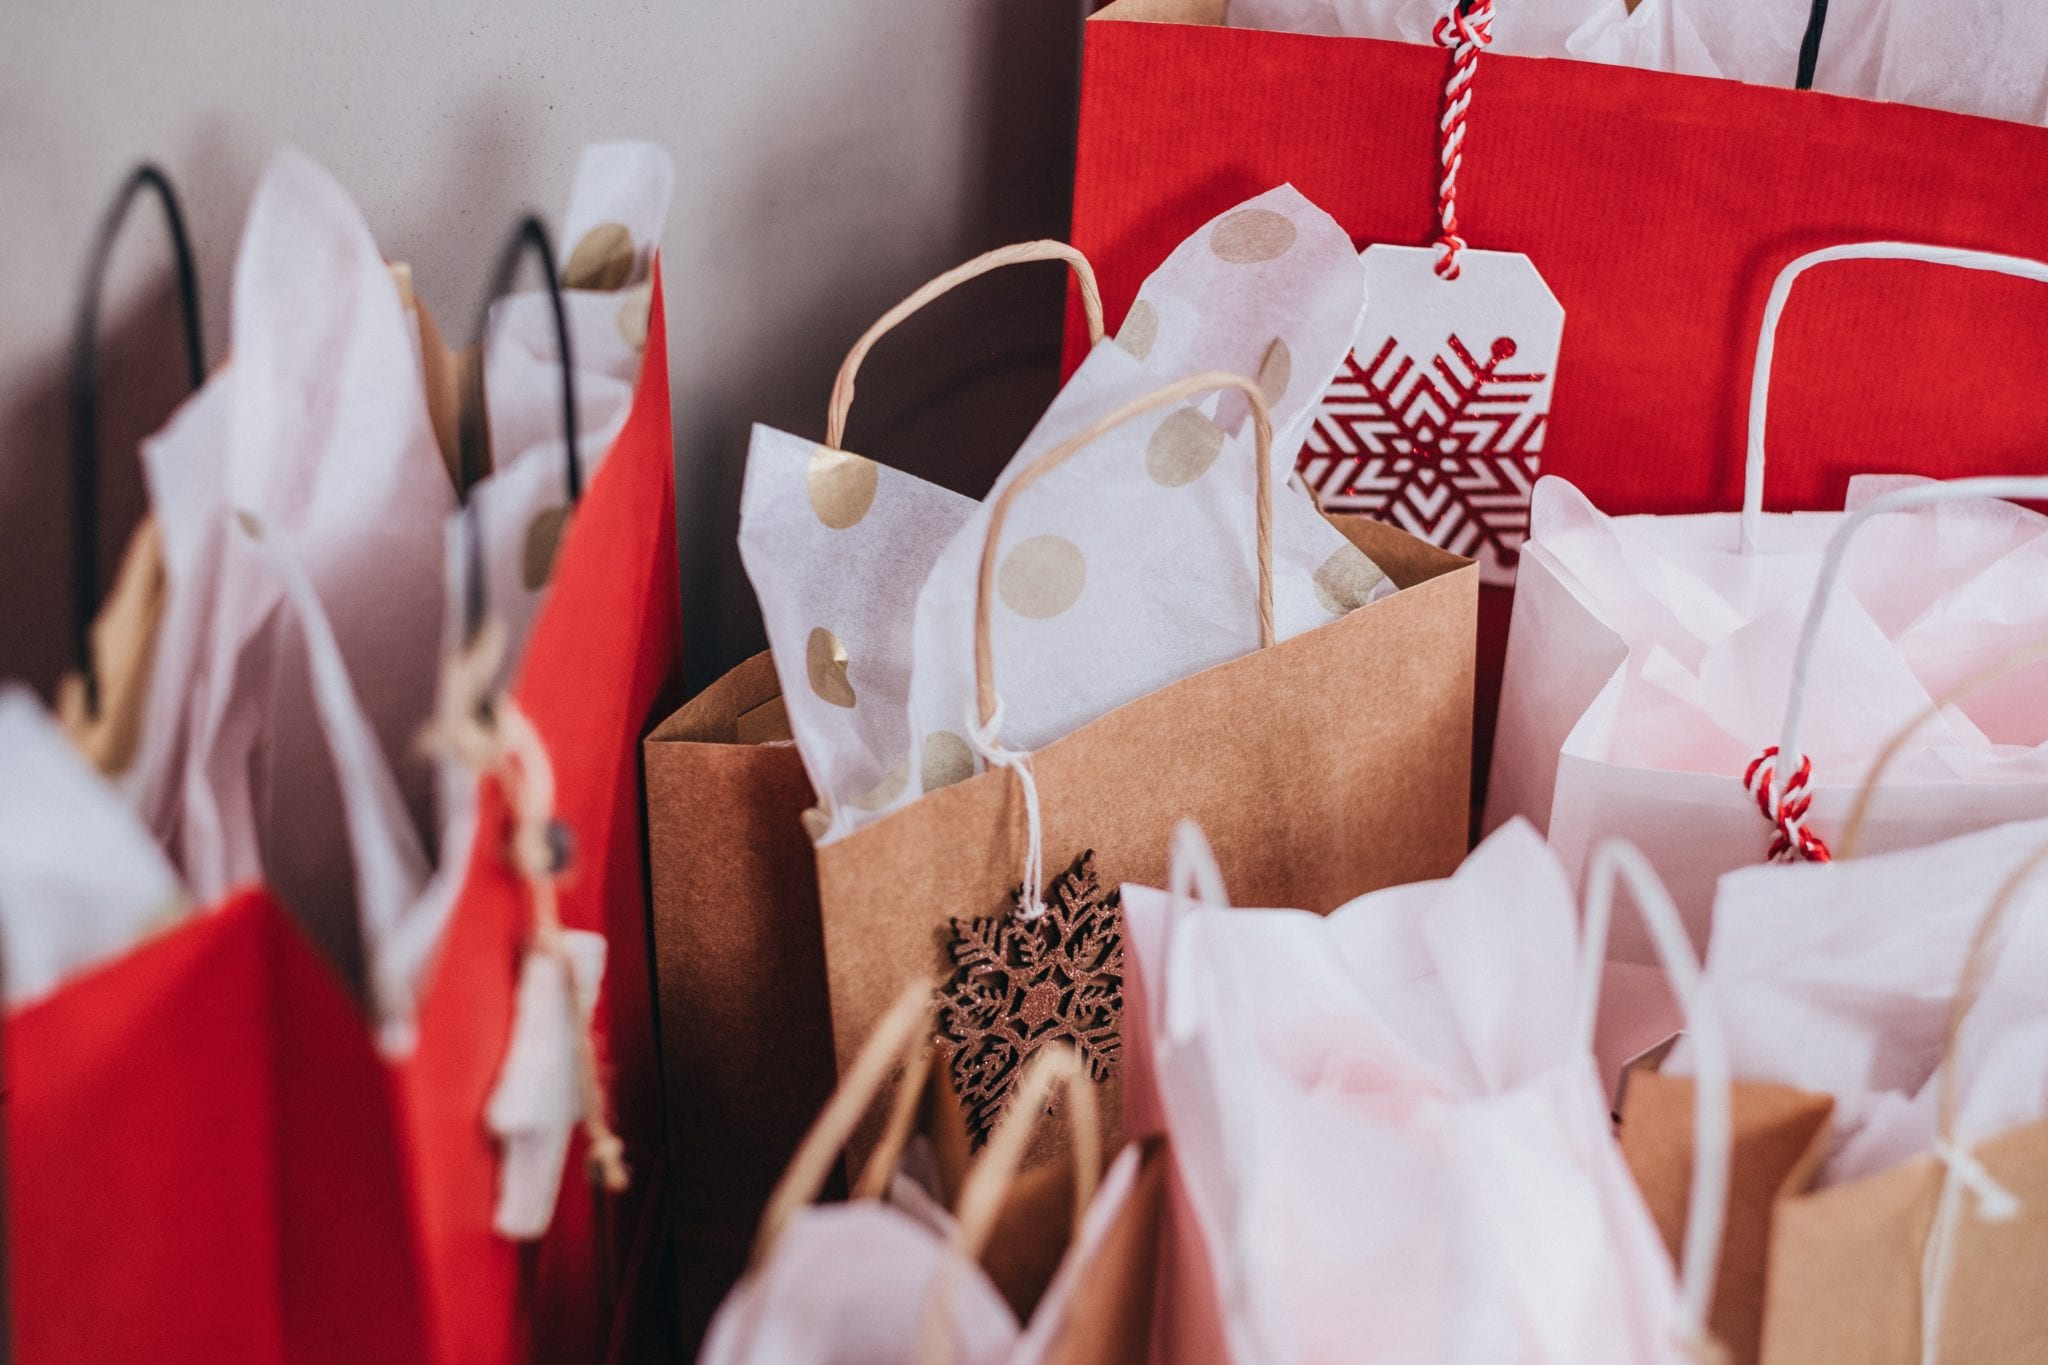 Retail innovation has changed holiday shopping